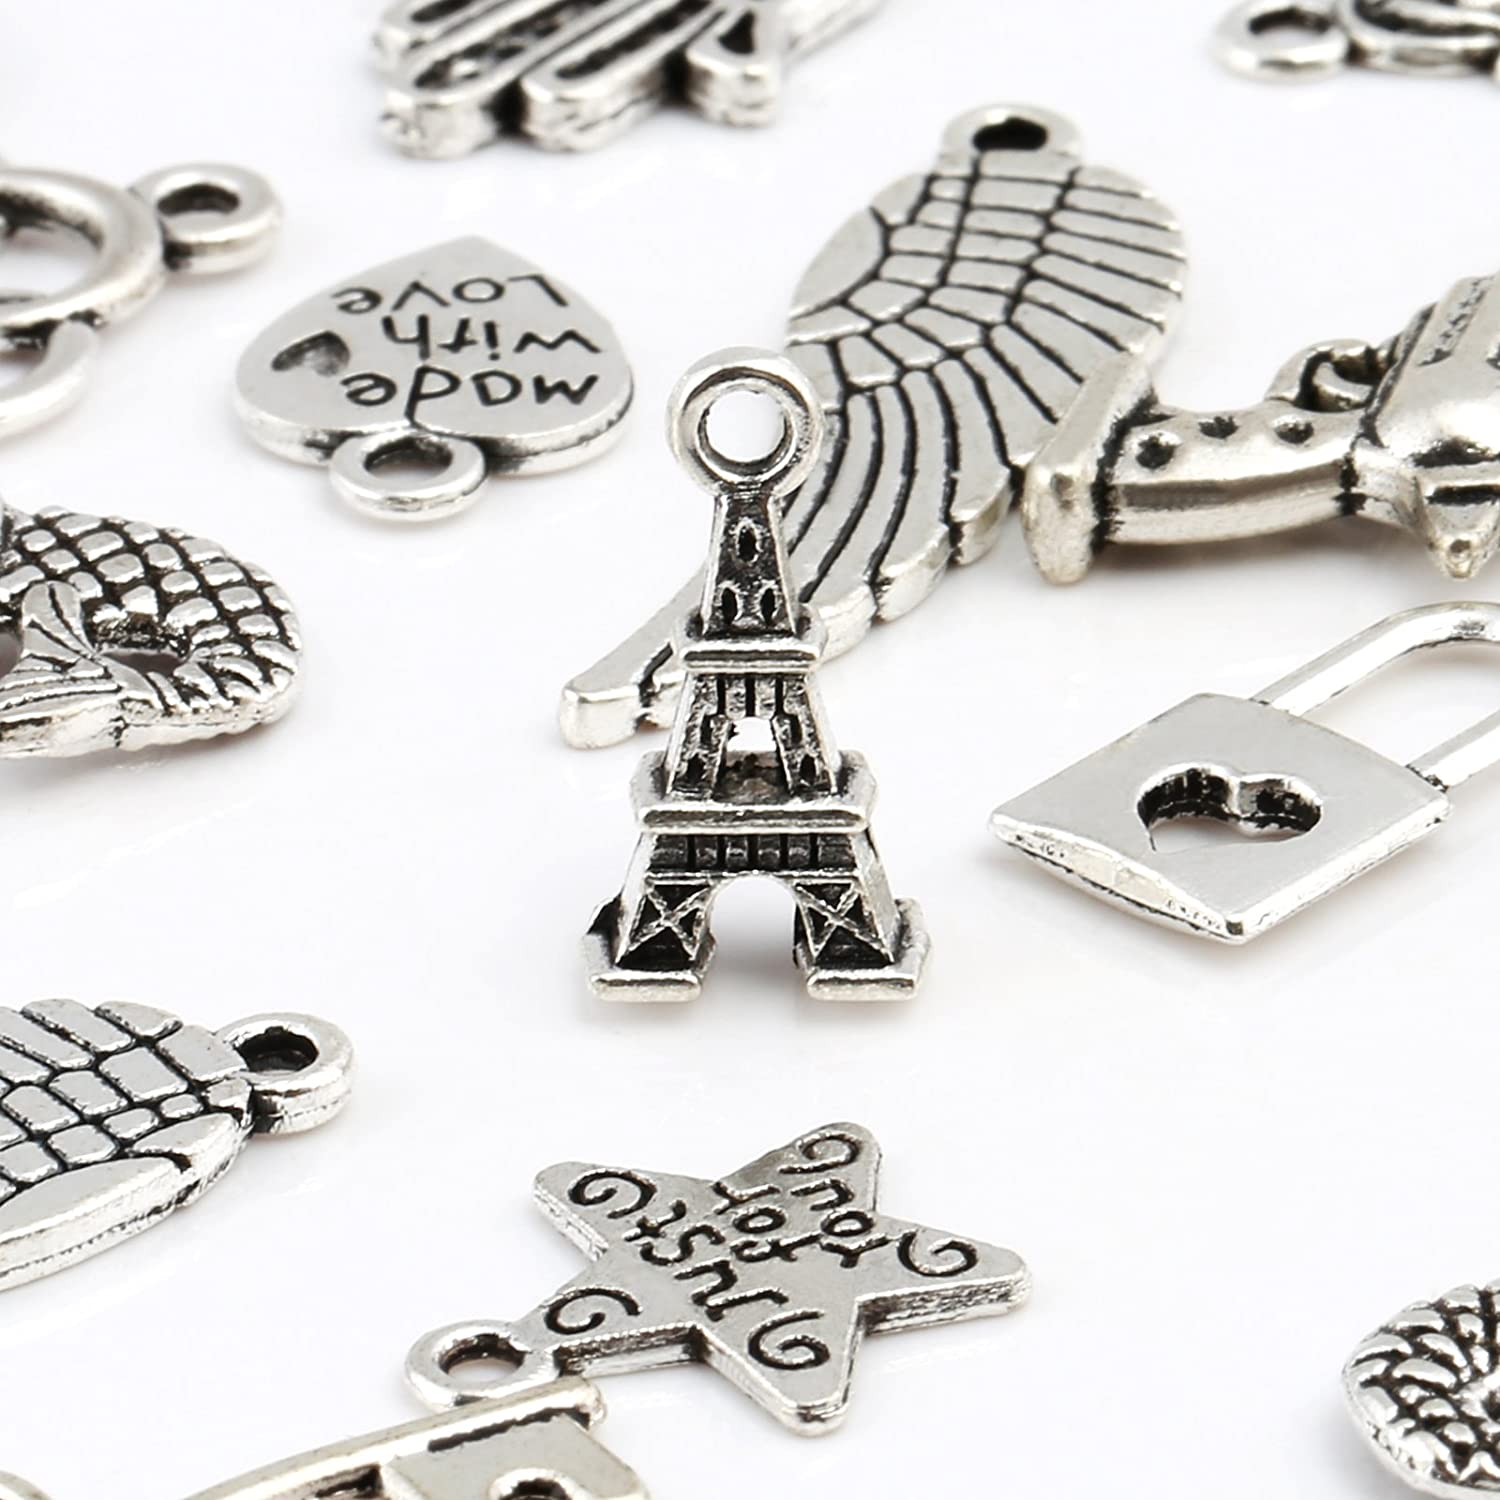 120 pcs Mixed Styles Retro Silver Pendant Charm for DIY Jewellery Making